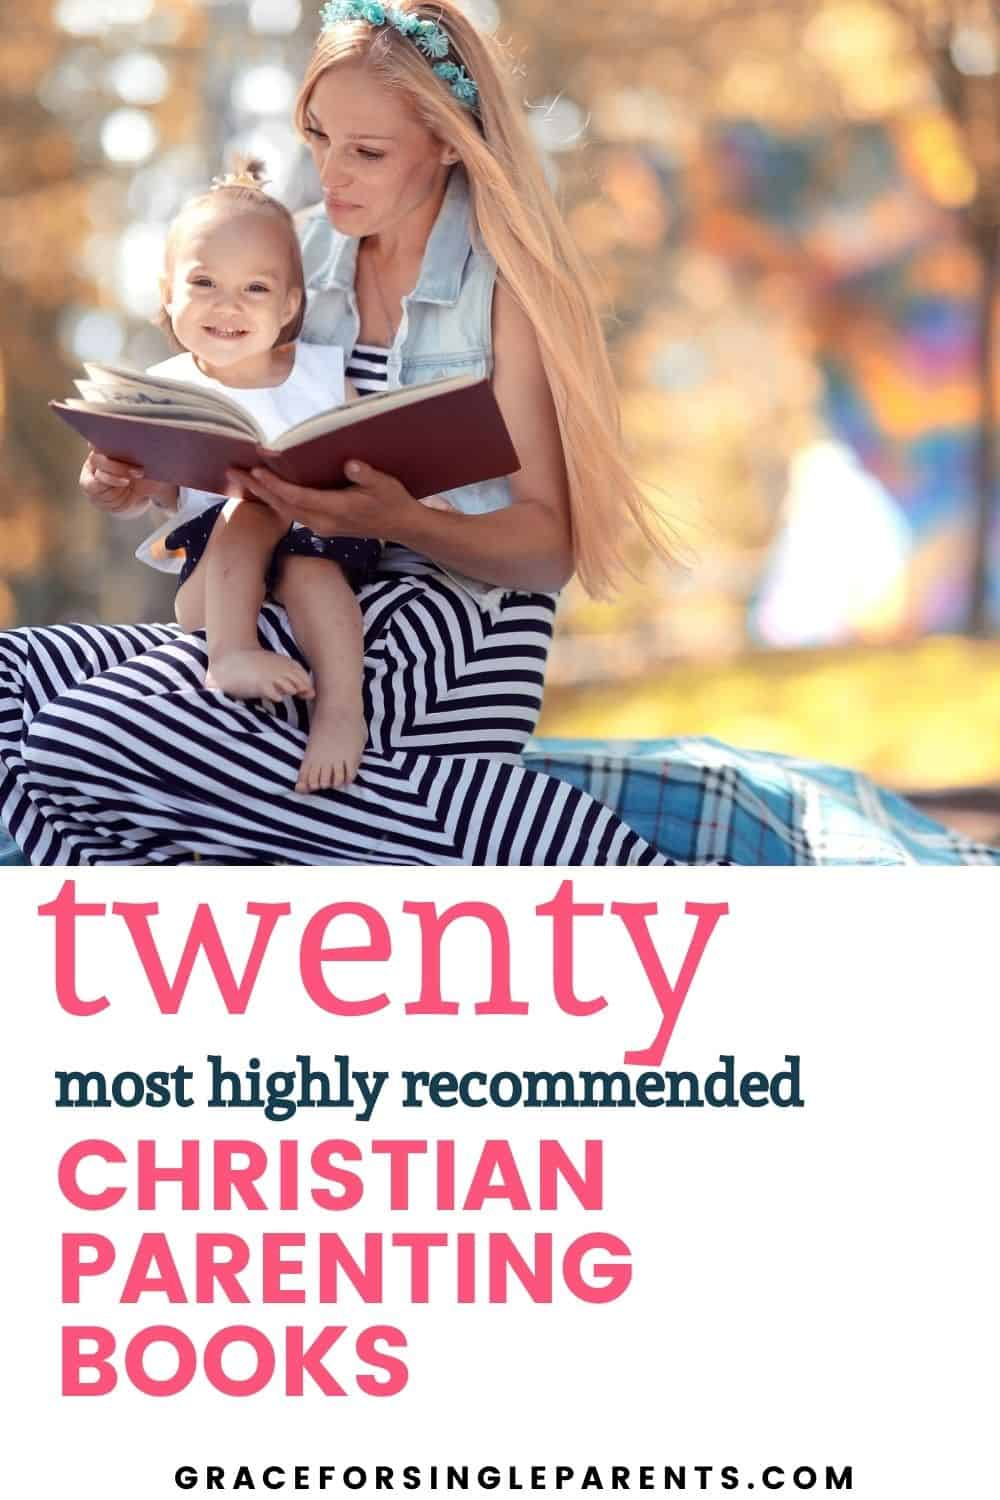 20 of the Most-Raved About Christian Parenting Books